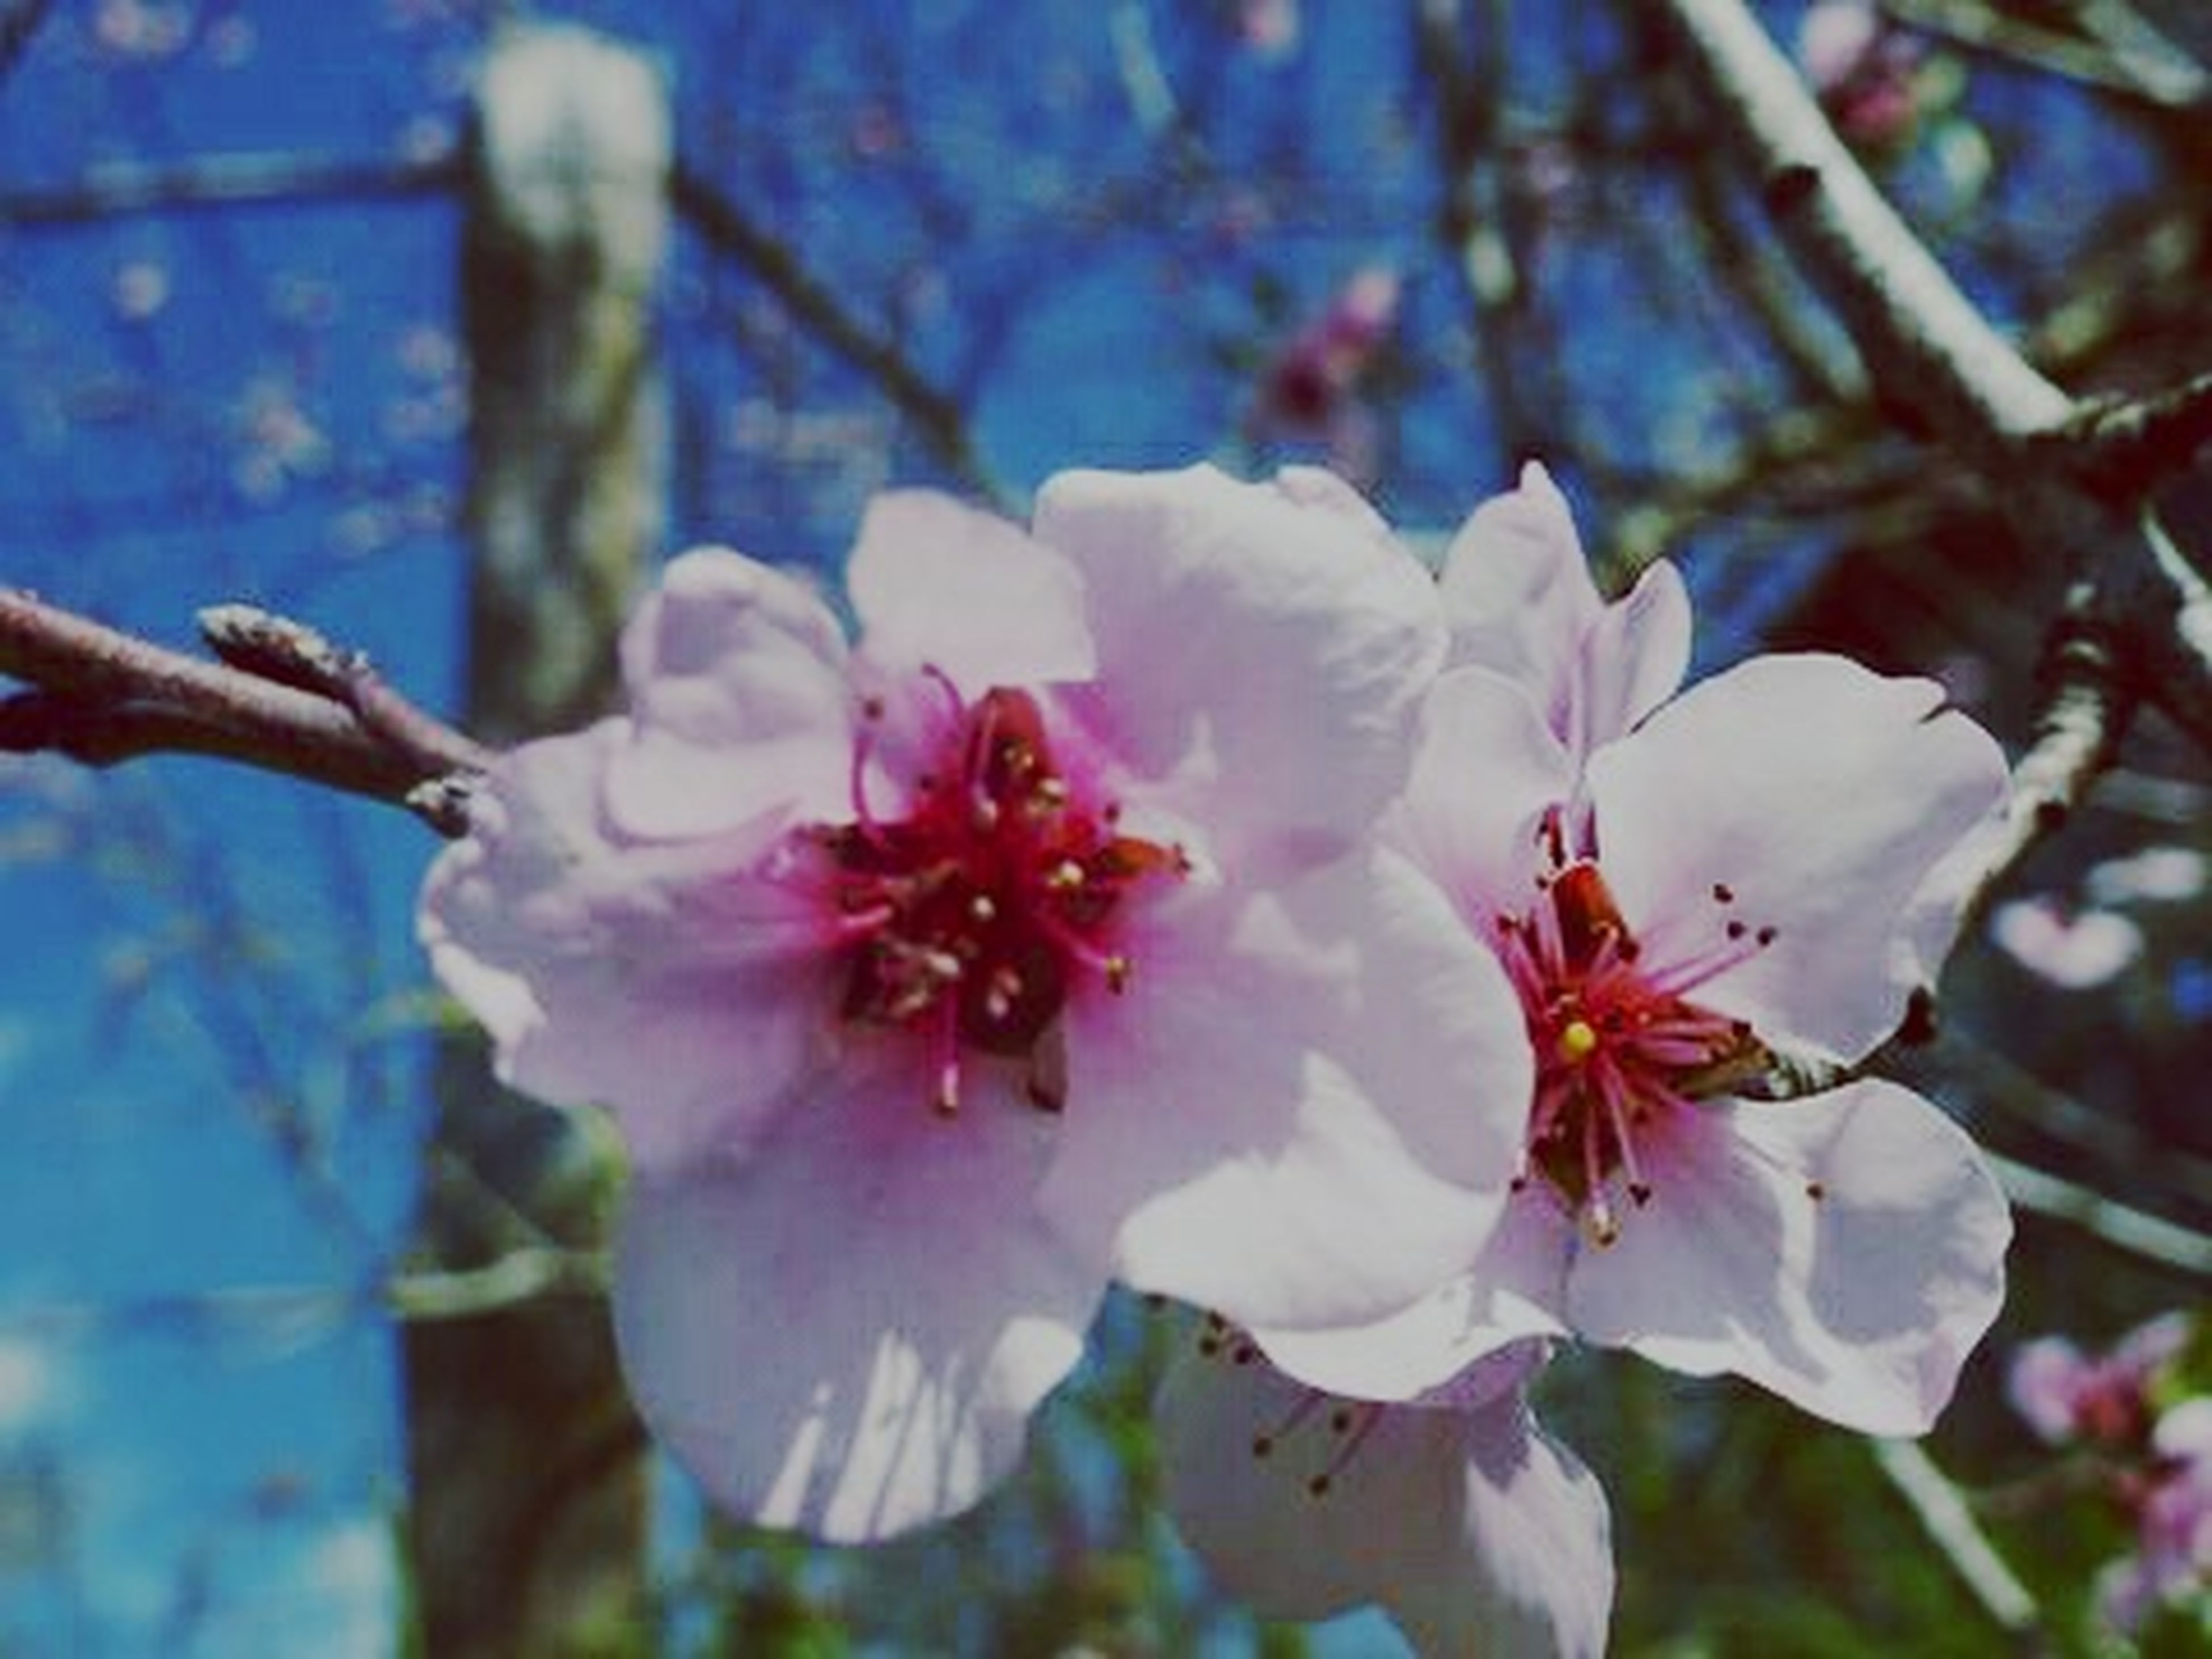 flower, petal, fragility, freshness, flower head, growth, focus on foreground, beauty in nature, blooming, close-up, nature, cherry blossom, branch, pollen, tree, in bloom, stamen, blossom, white color, pink color